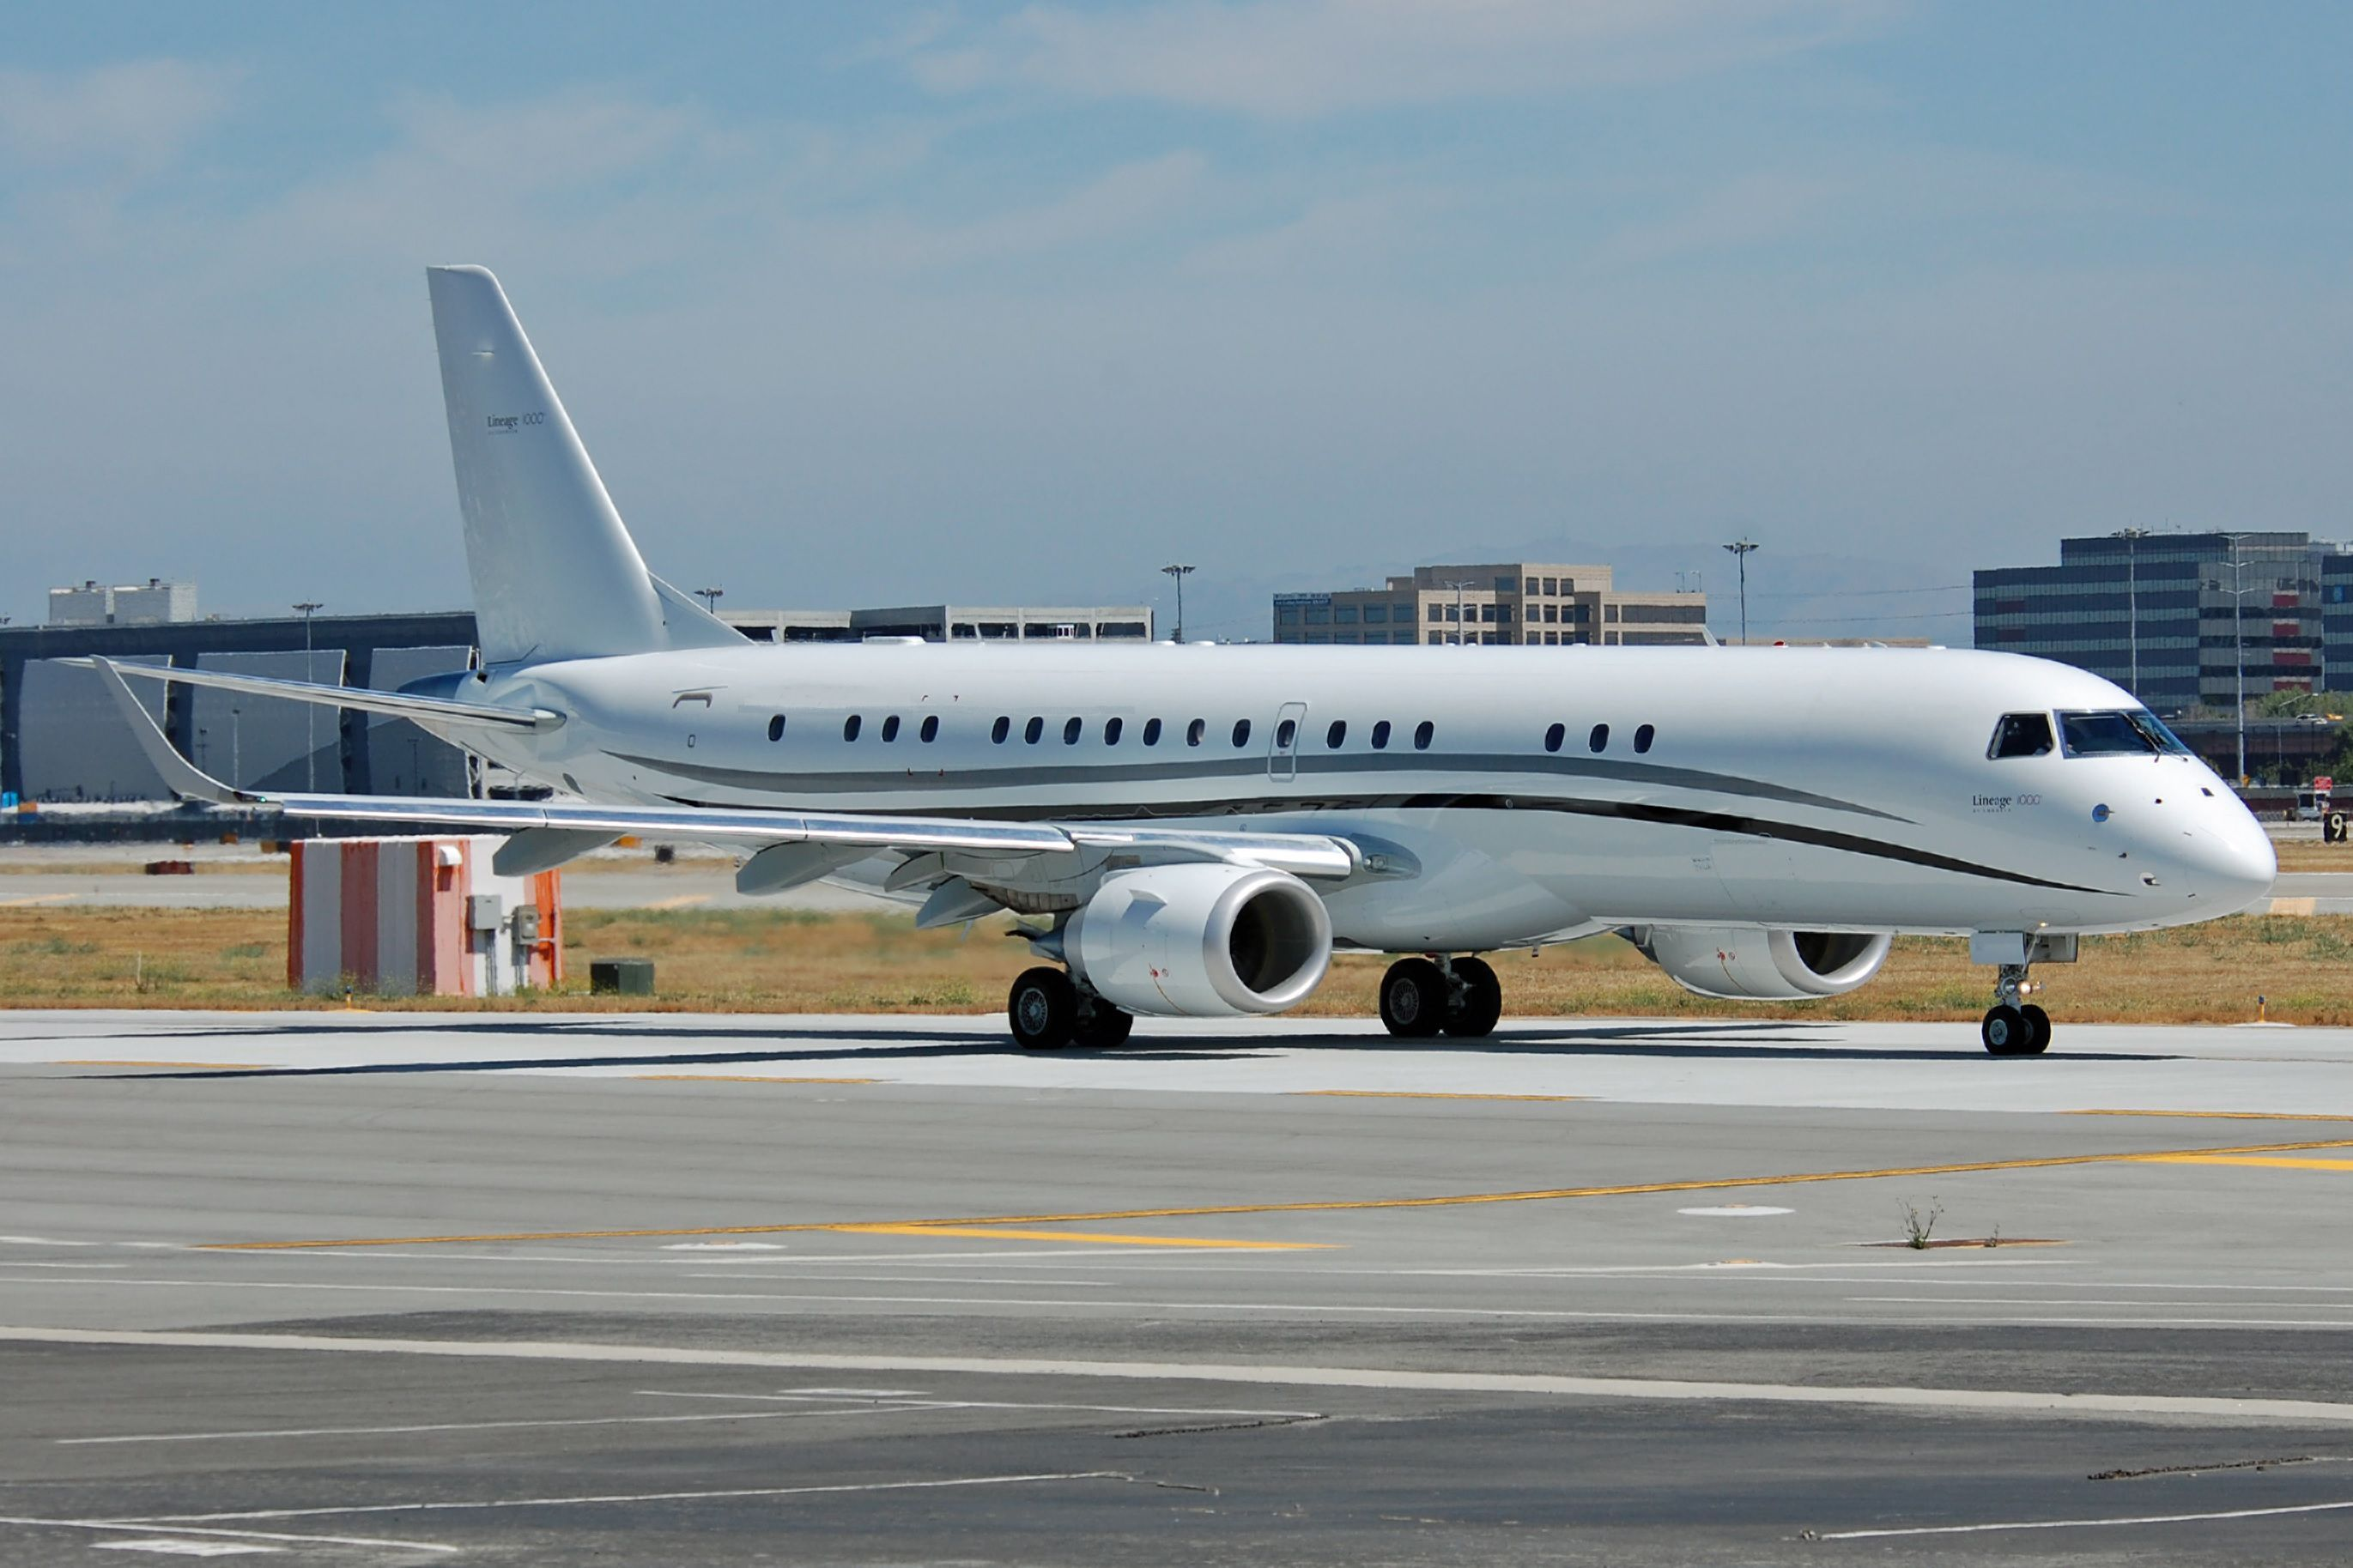 Embraer have taken the EMB190 and fitted additional fuel